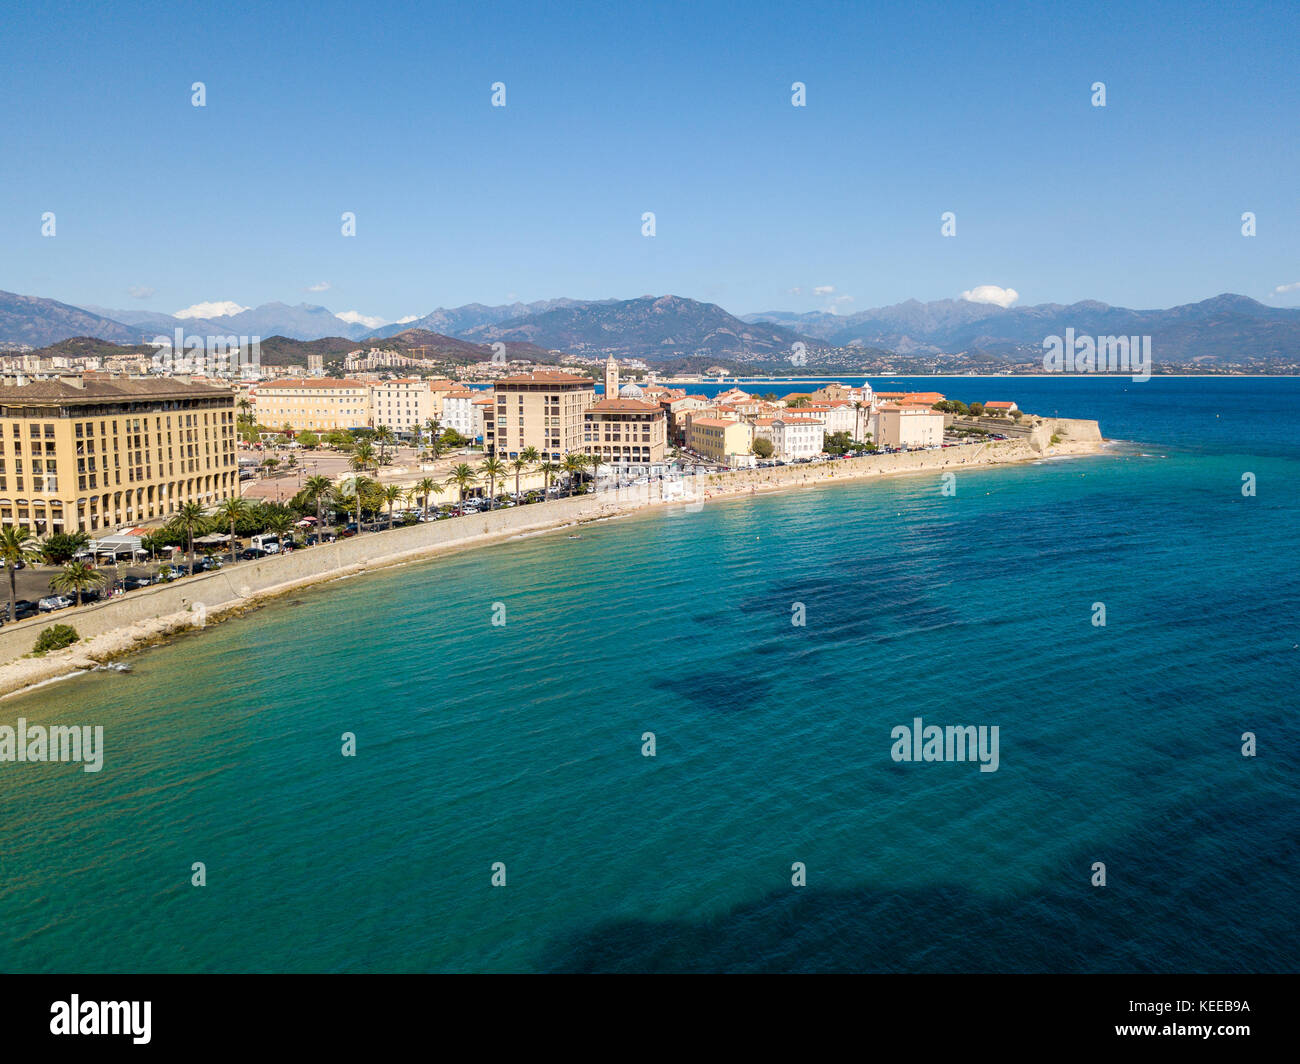 Aerial view of Ajaccio Corsica France City center seen from the